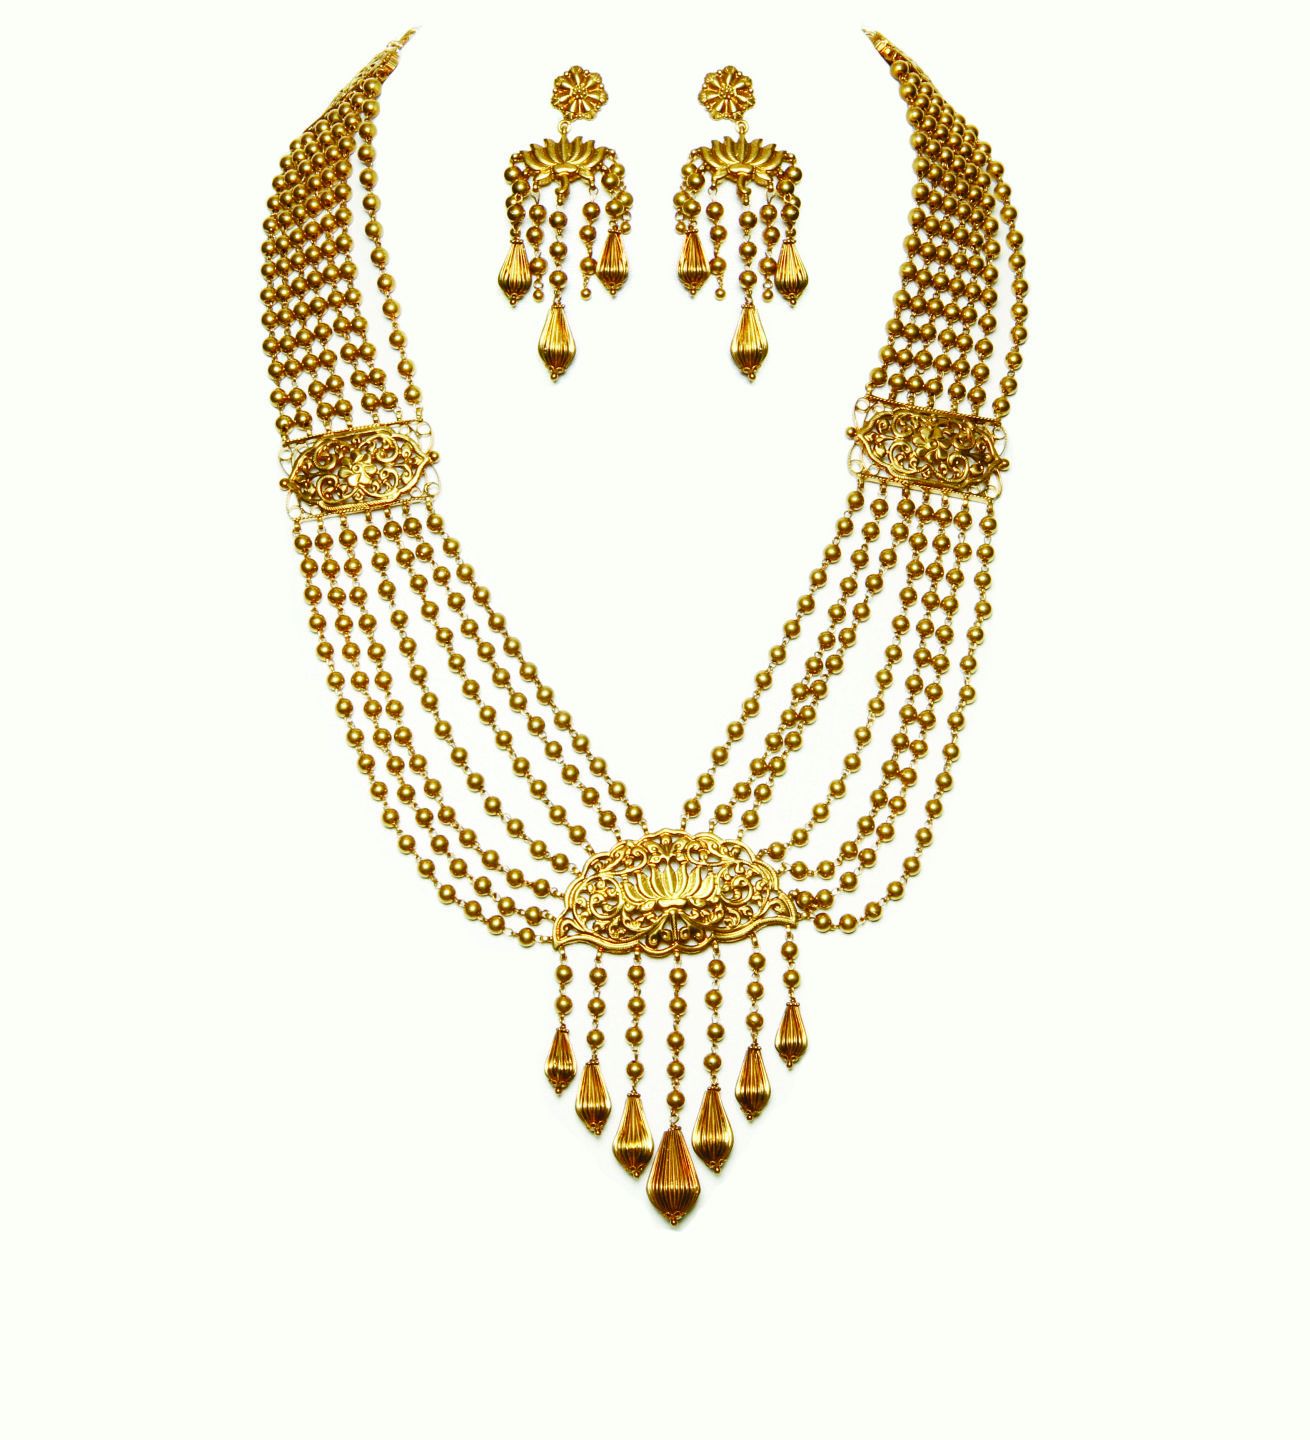 Pin by Niva on Long Gold Chains | Pinterest | Gold, Jewel and Chains